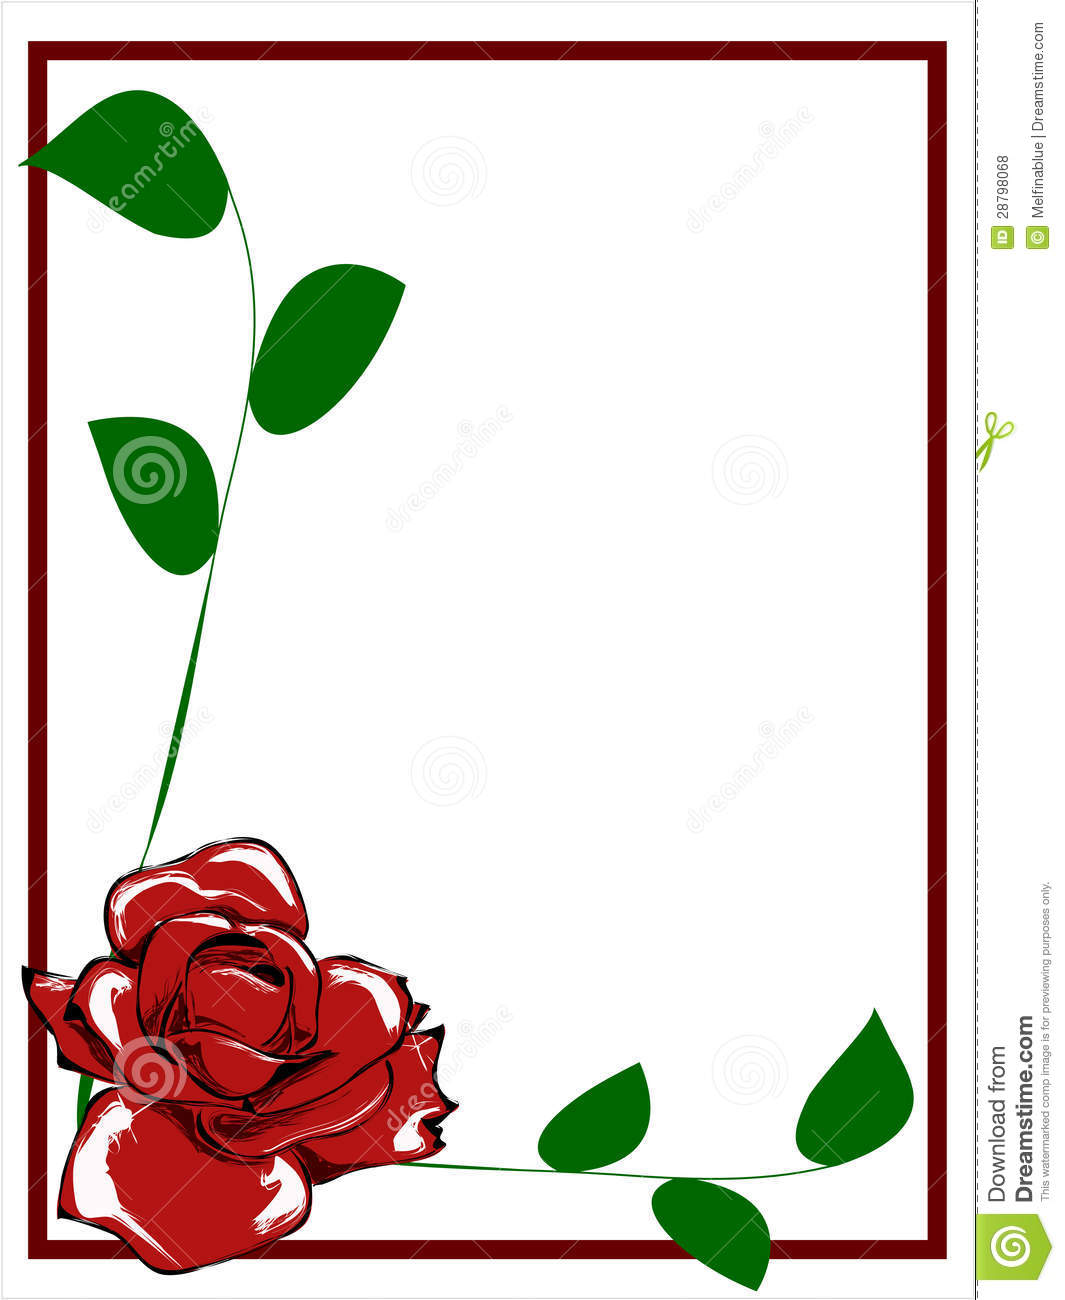 Funeral borders free download best funeral borders on clipartmag 1065x1300 white rose border clipart izmirmasajfo